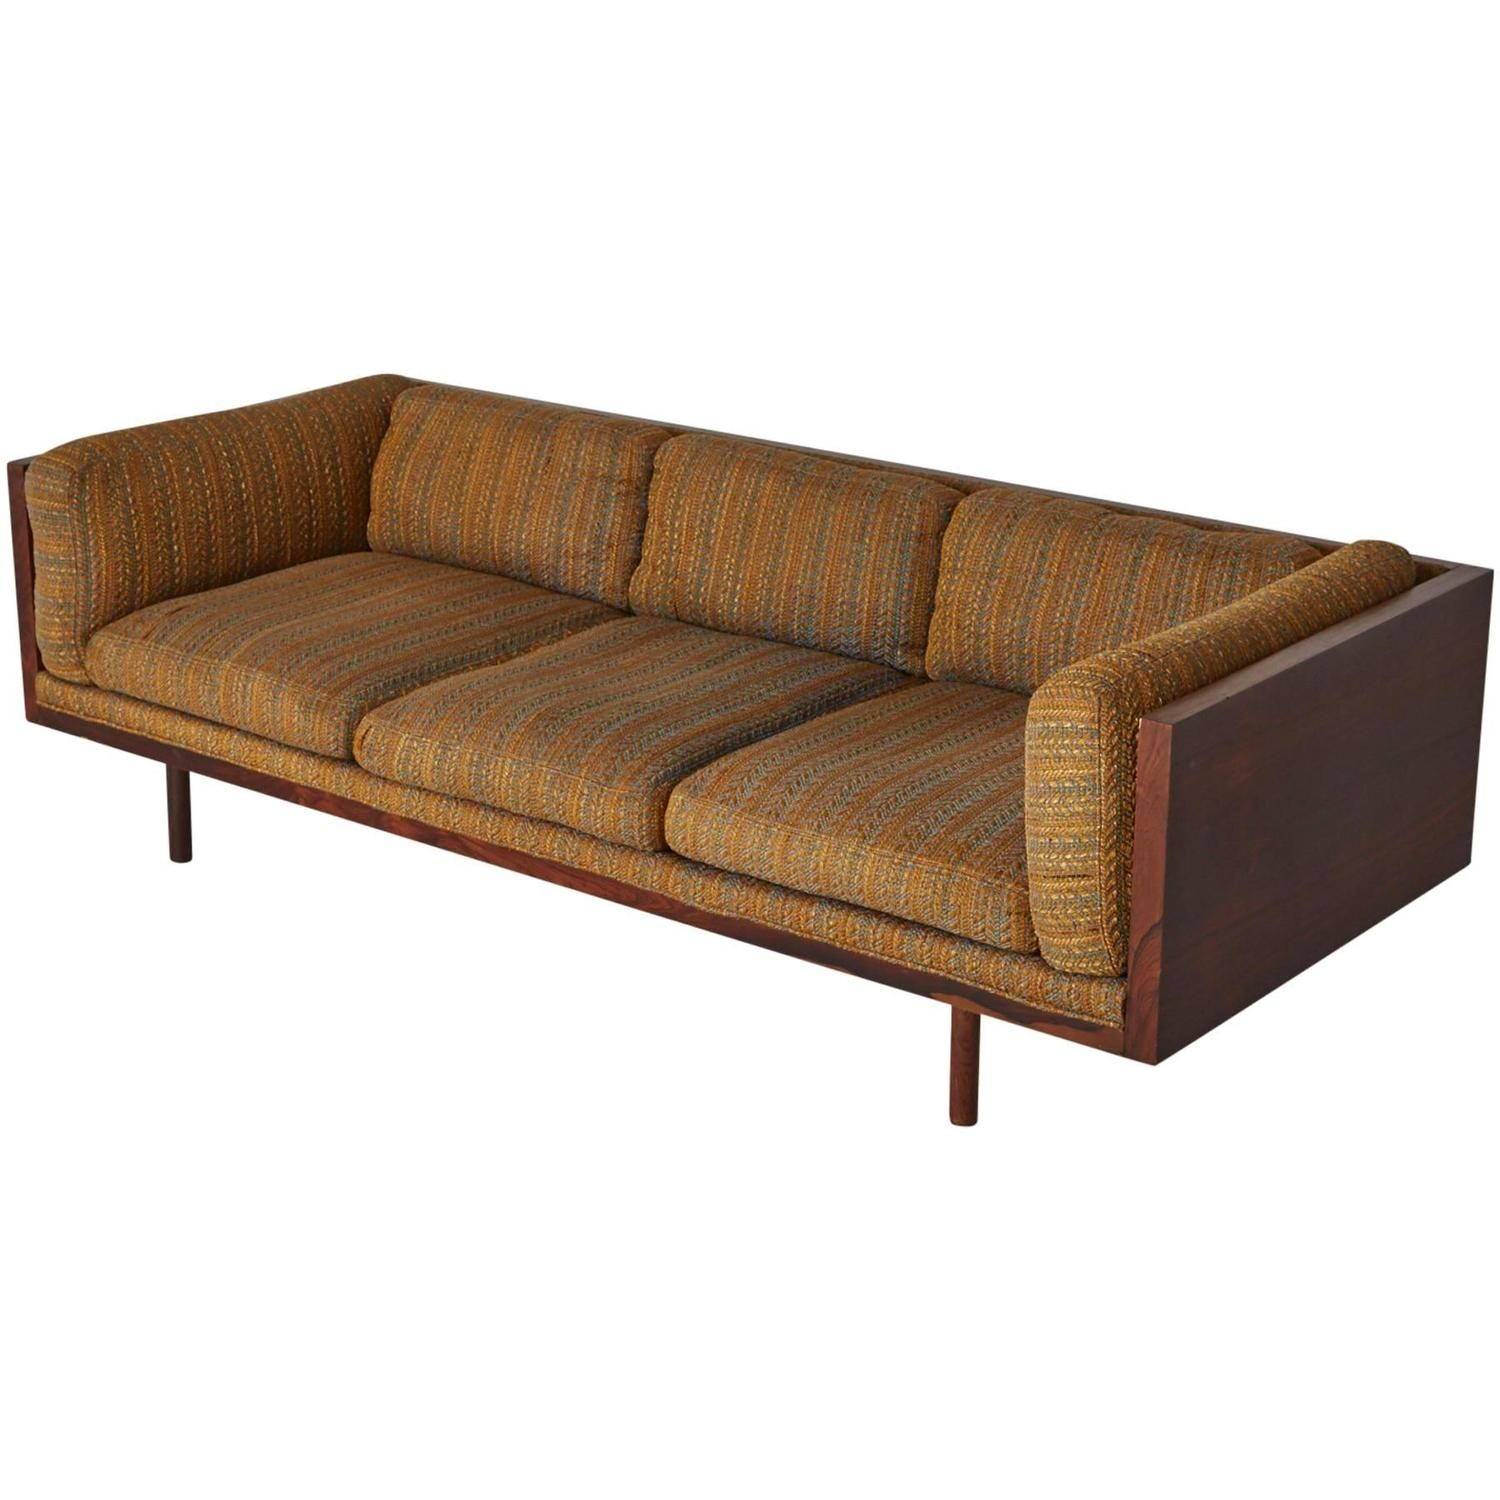 Rosewood Case Sofa By Milo Baughman For Thayer Coggin